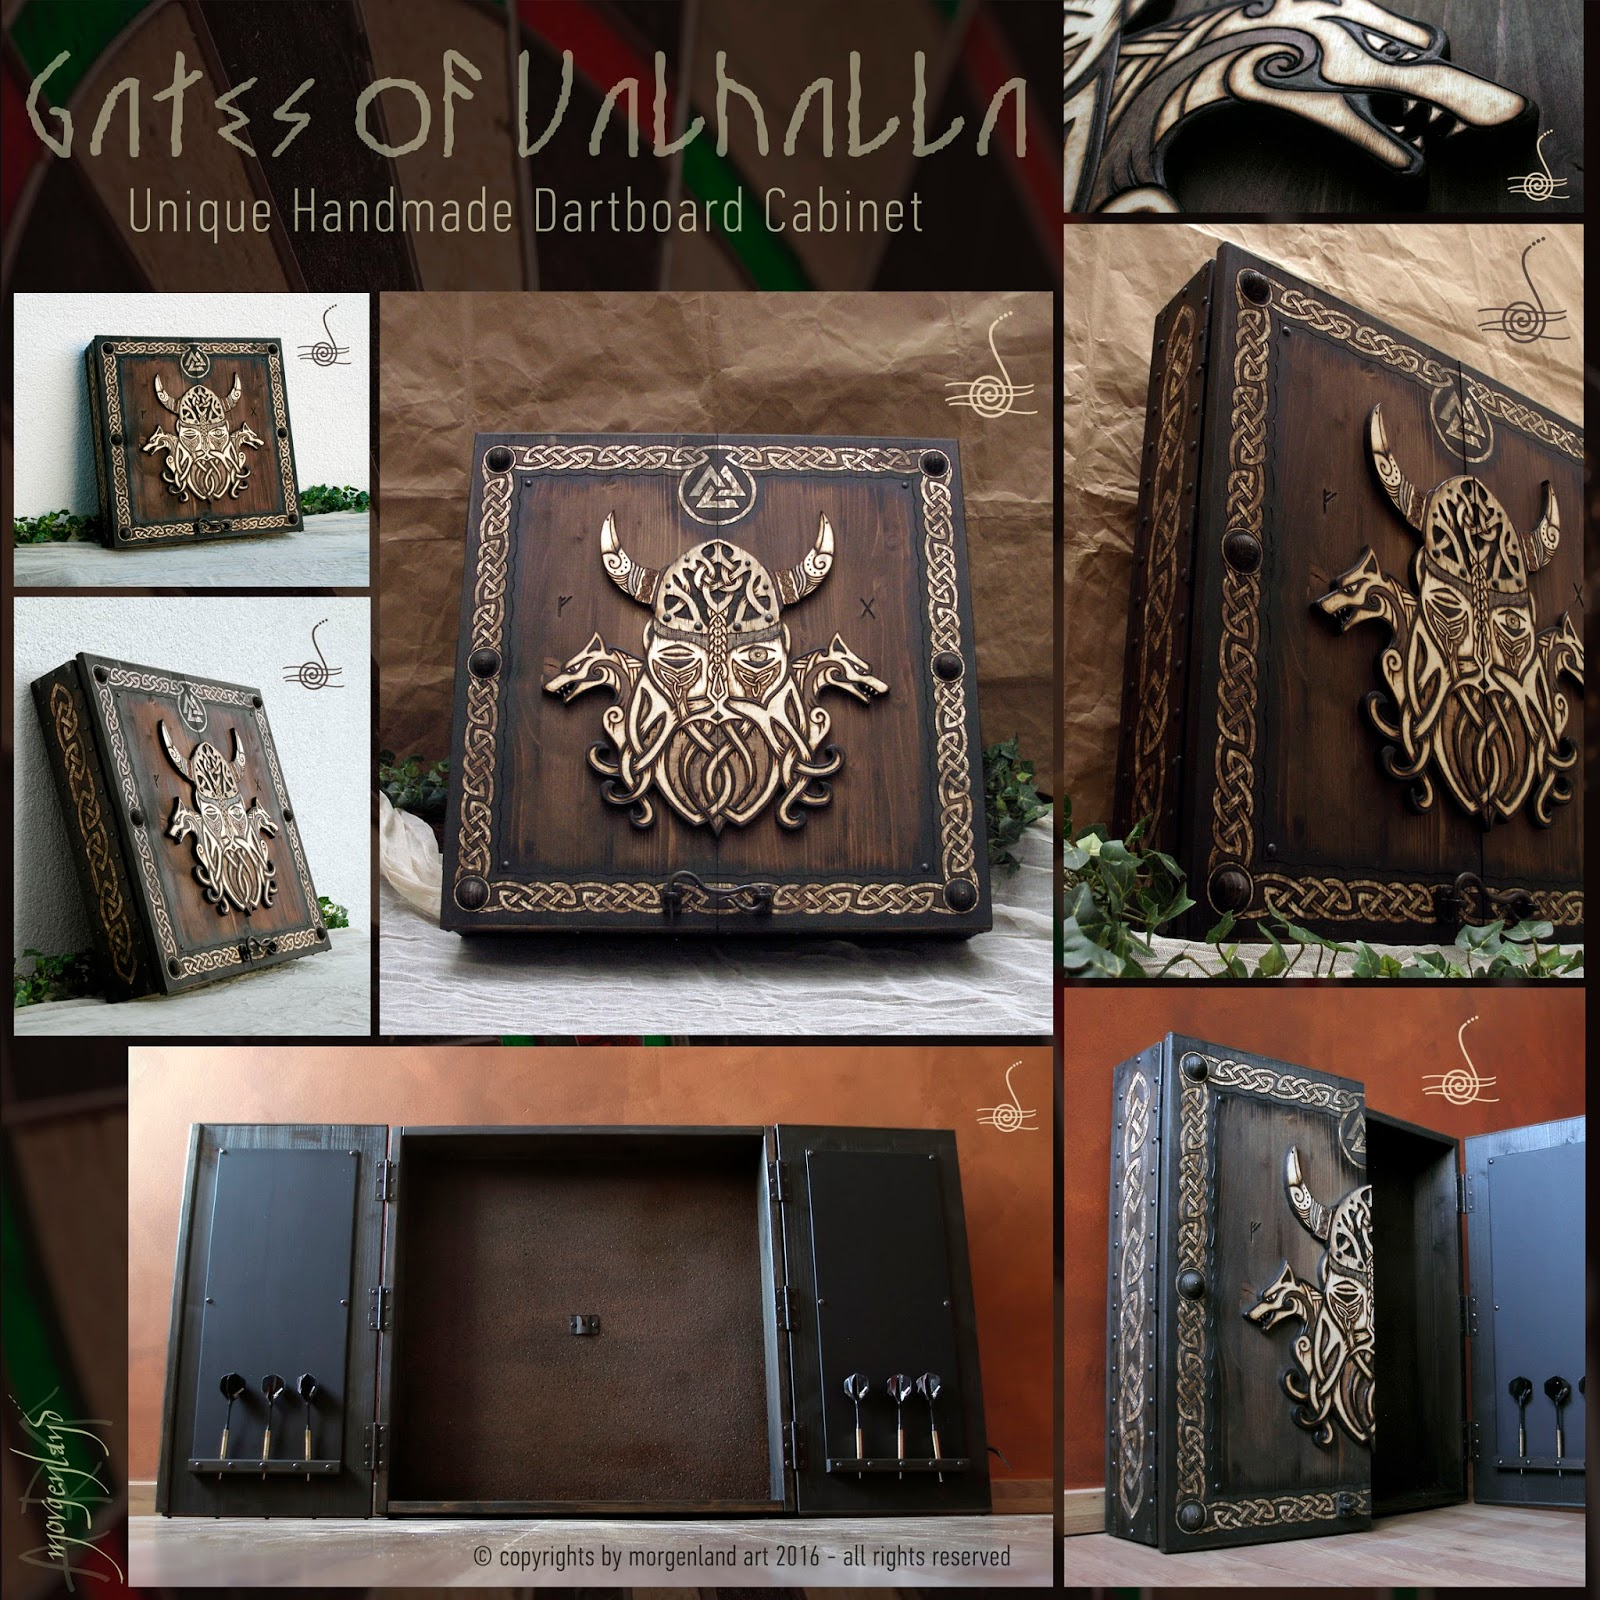 Gates Of Valhalla Unique Handmade Dartboard Cabinet